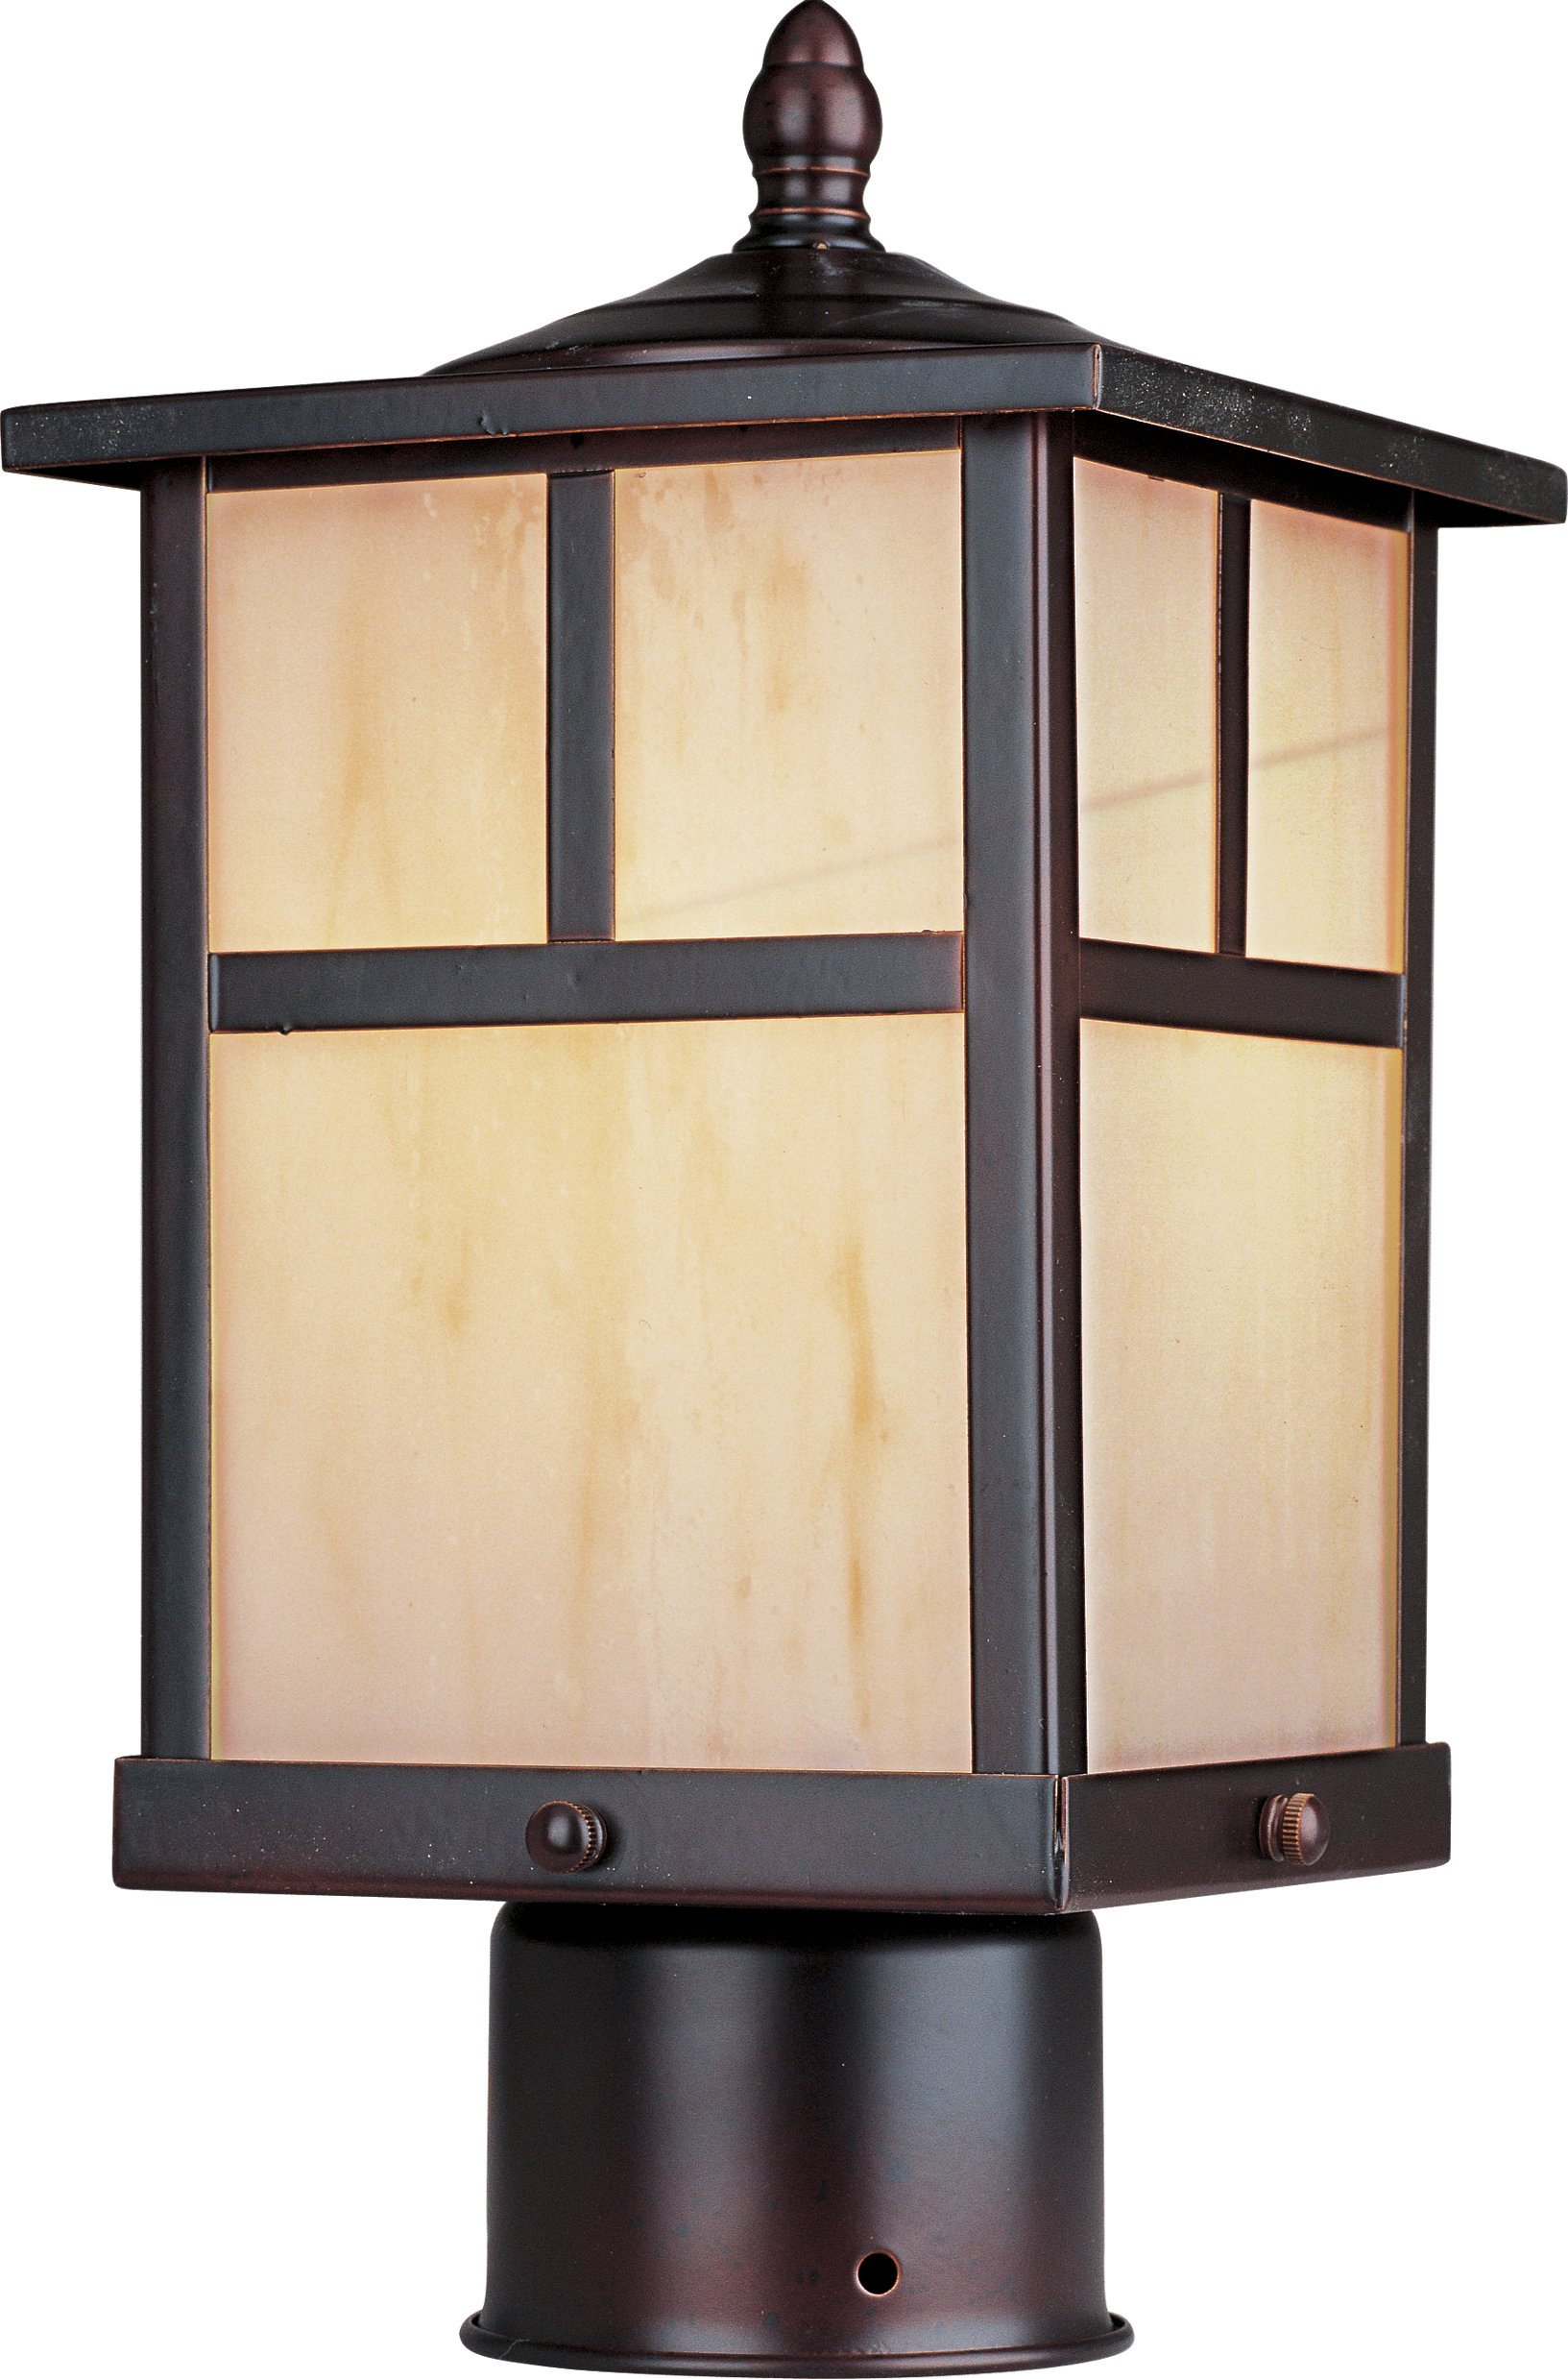 Maxim 85055HOBU Coldwater EE 1-Light Outdoor Pole/Post Lantern, Burnished Finish, Honey Glass, GU24 Fluorescent Fluorescent Bulb , 60W Max., Dry Safety Rating, Standard Dimmable, Glass Shade Material, 1344 Rated Lumens